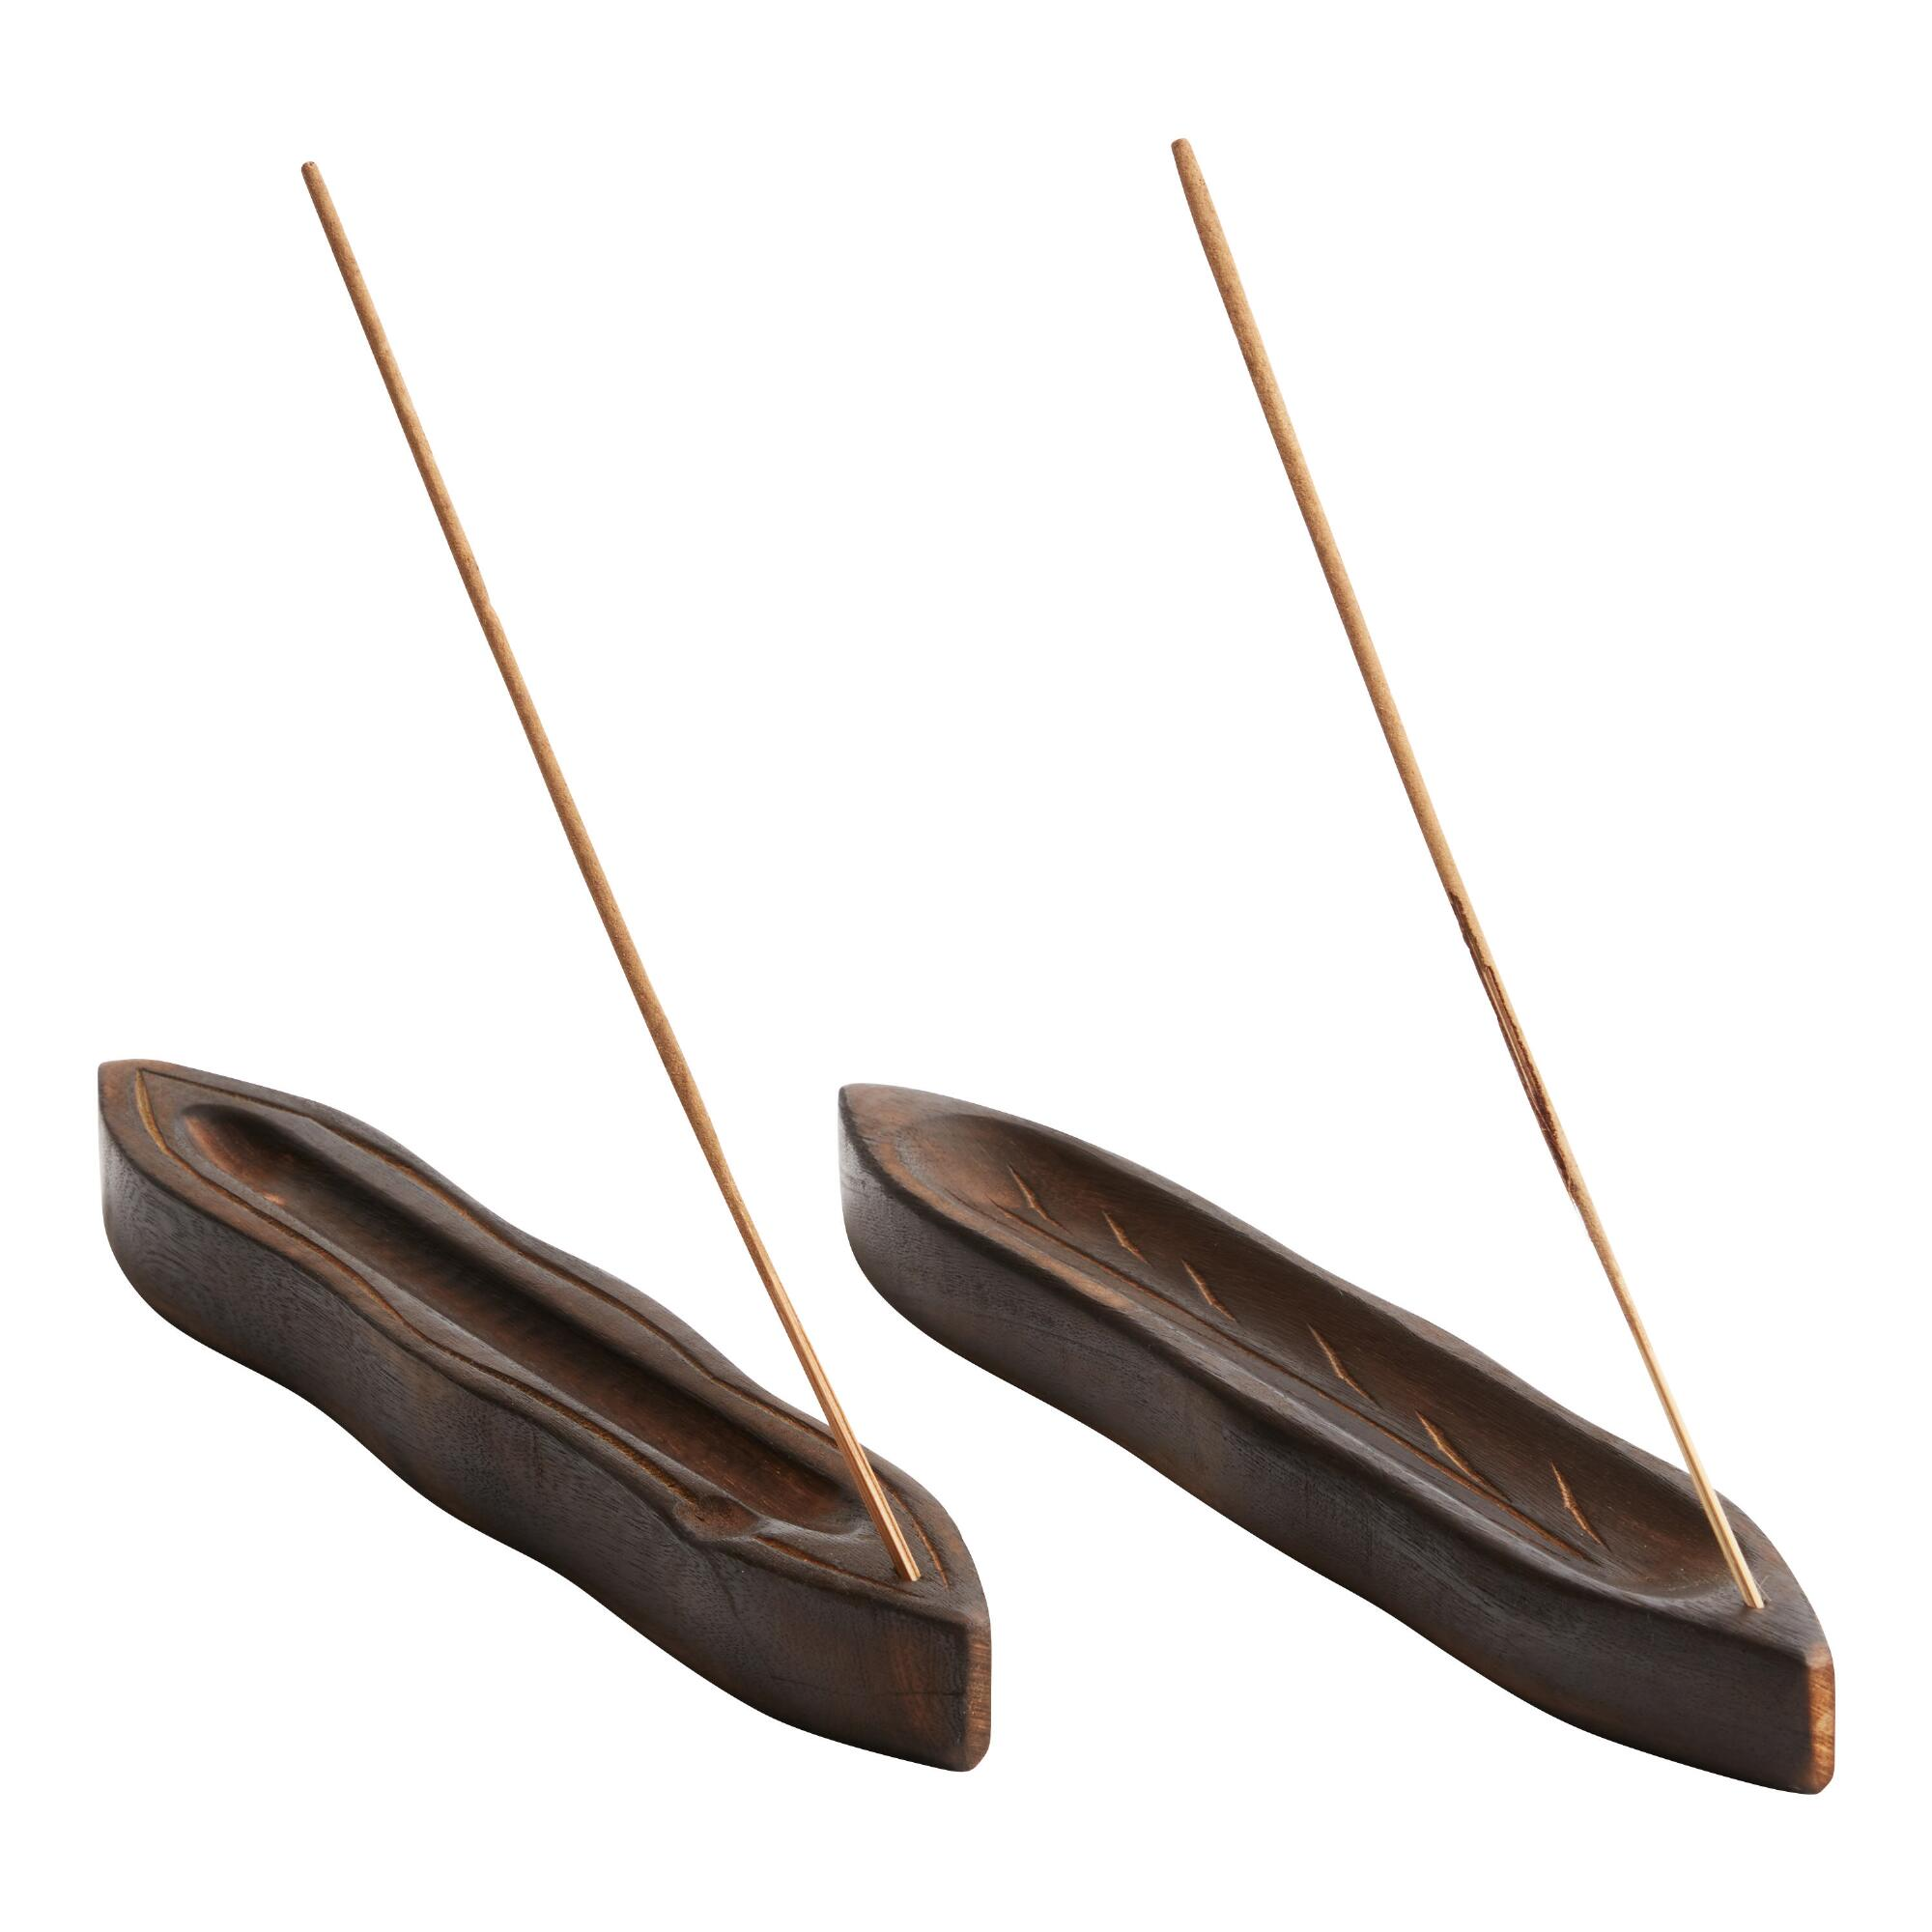 Leaf Wood Incense Burner, Set of 2 by World Market